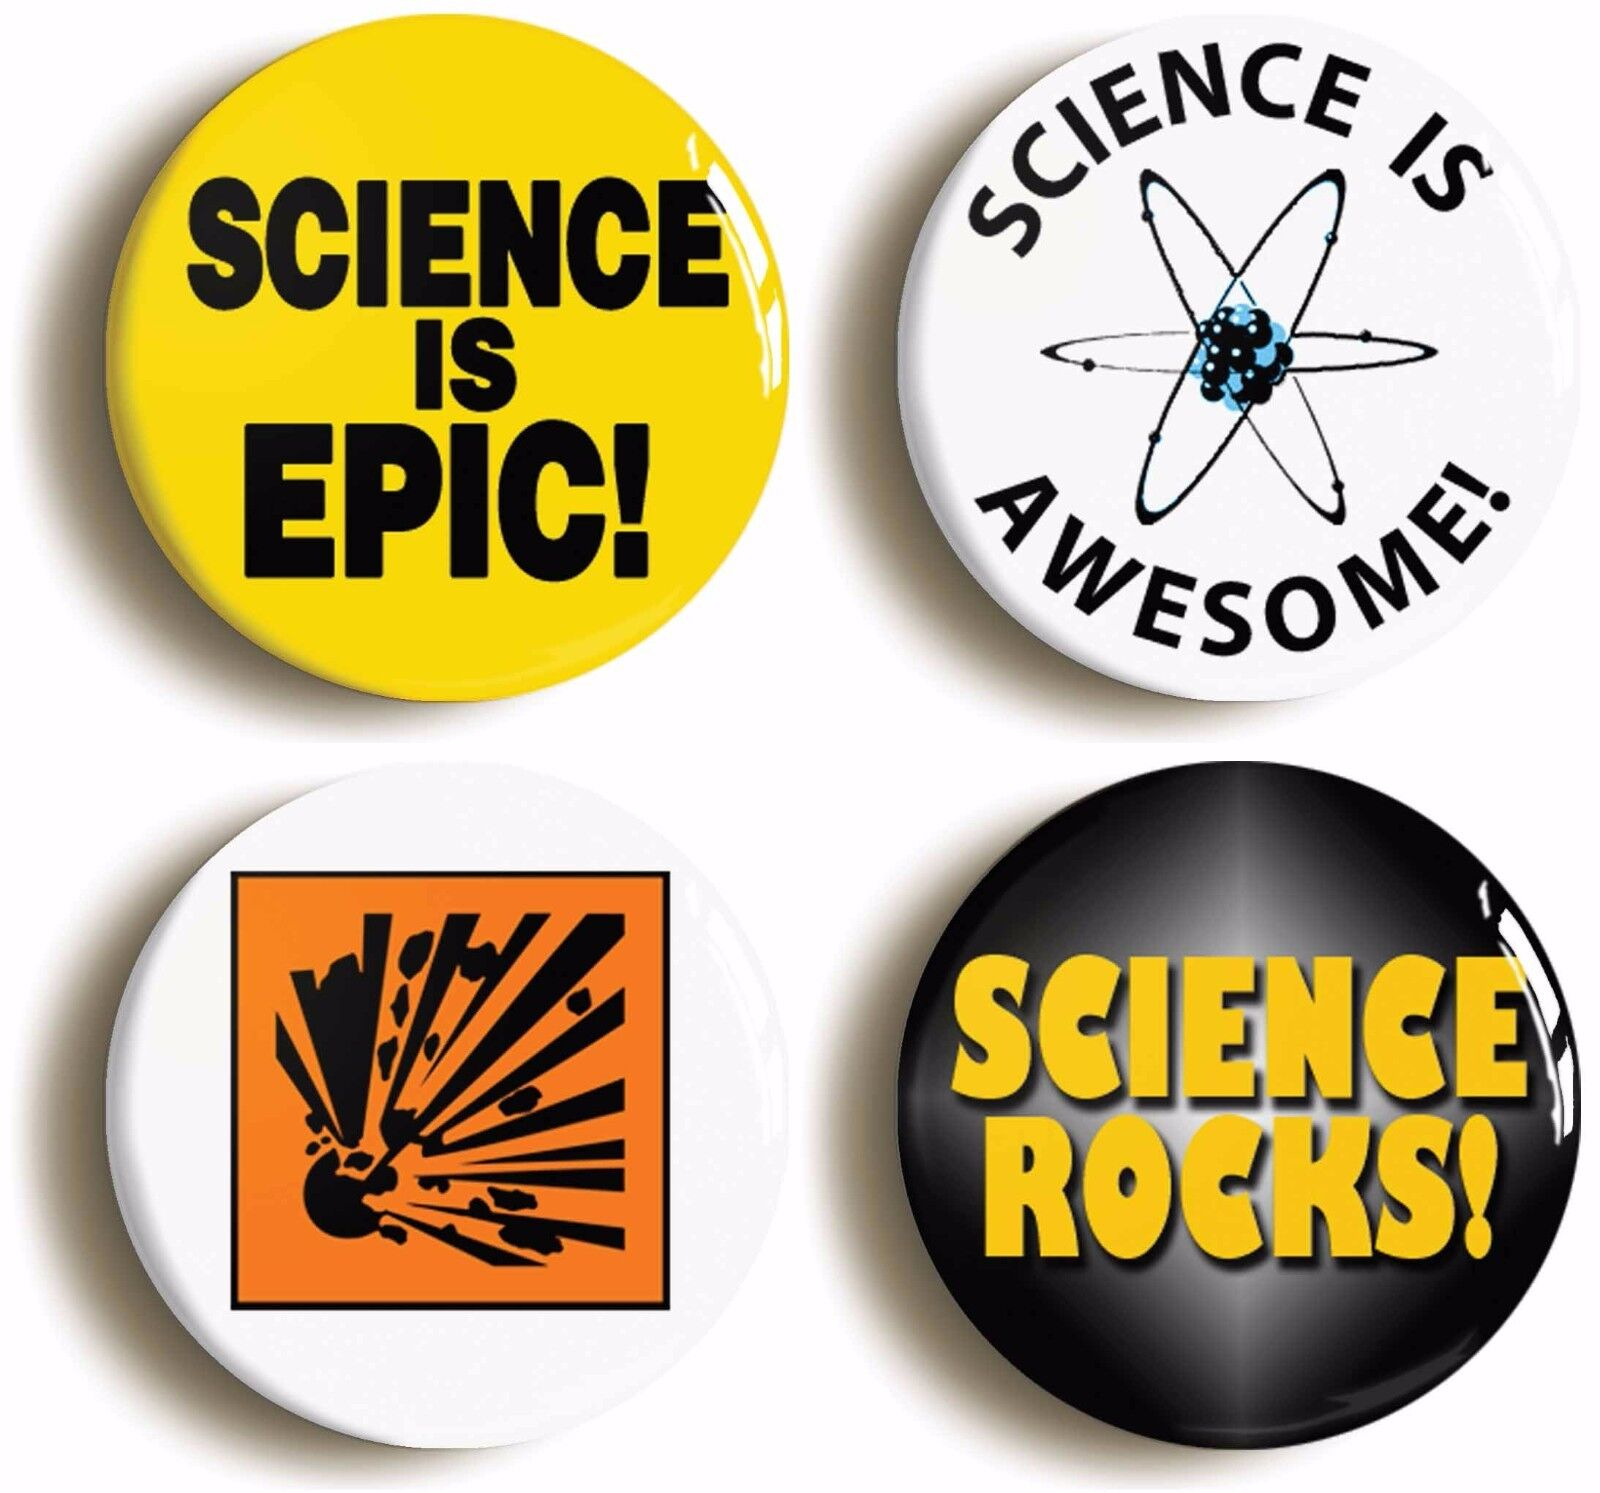 enthusiastic science geek badge button pin set (size is 1inch/25mm diameter)